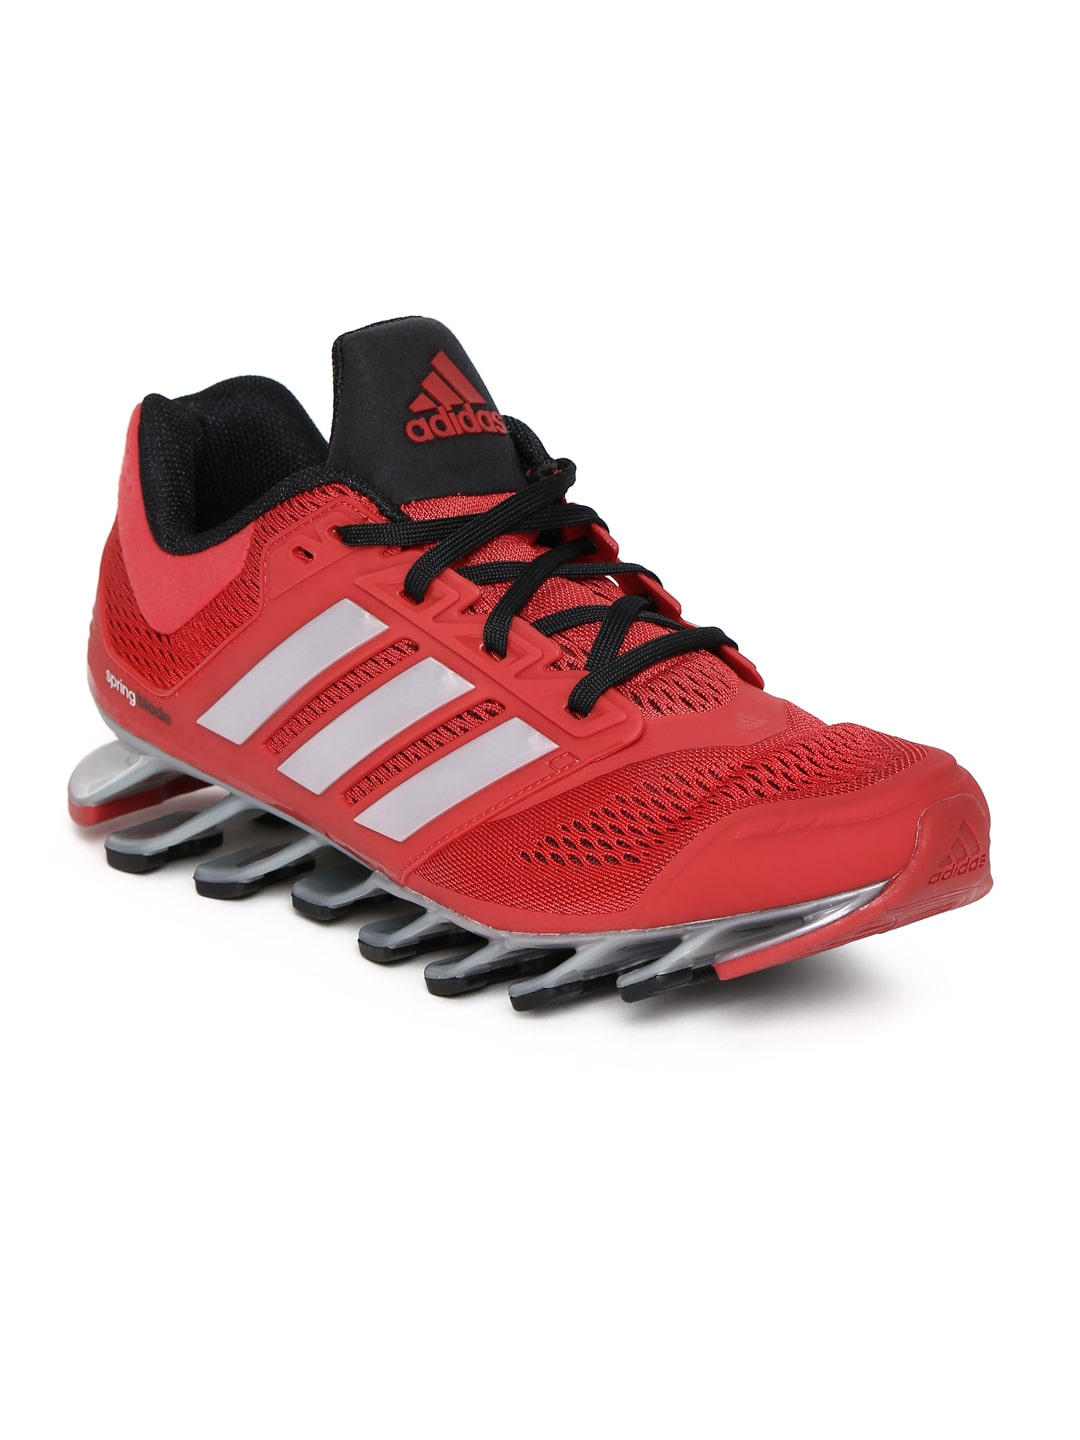 cd42e0667bc4 Adidas c75664 Men Red Springblade Drive M Running Shoes- Price in India